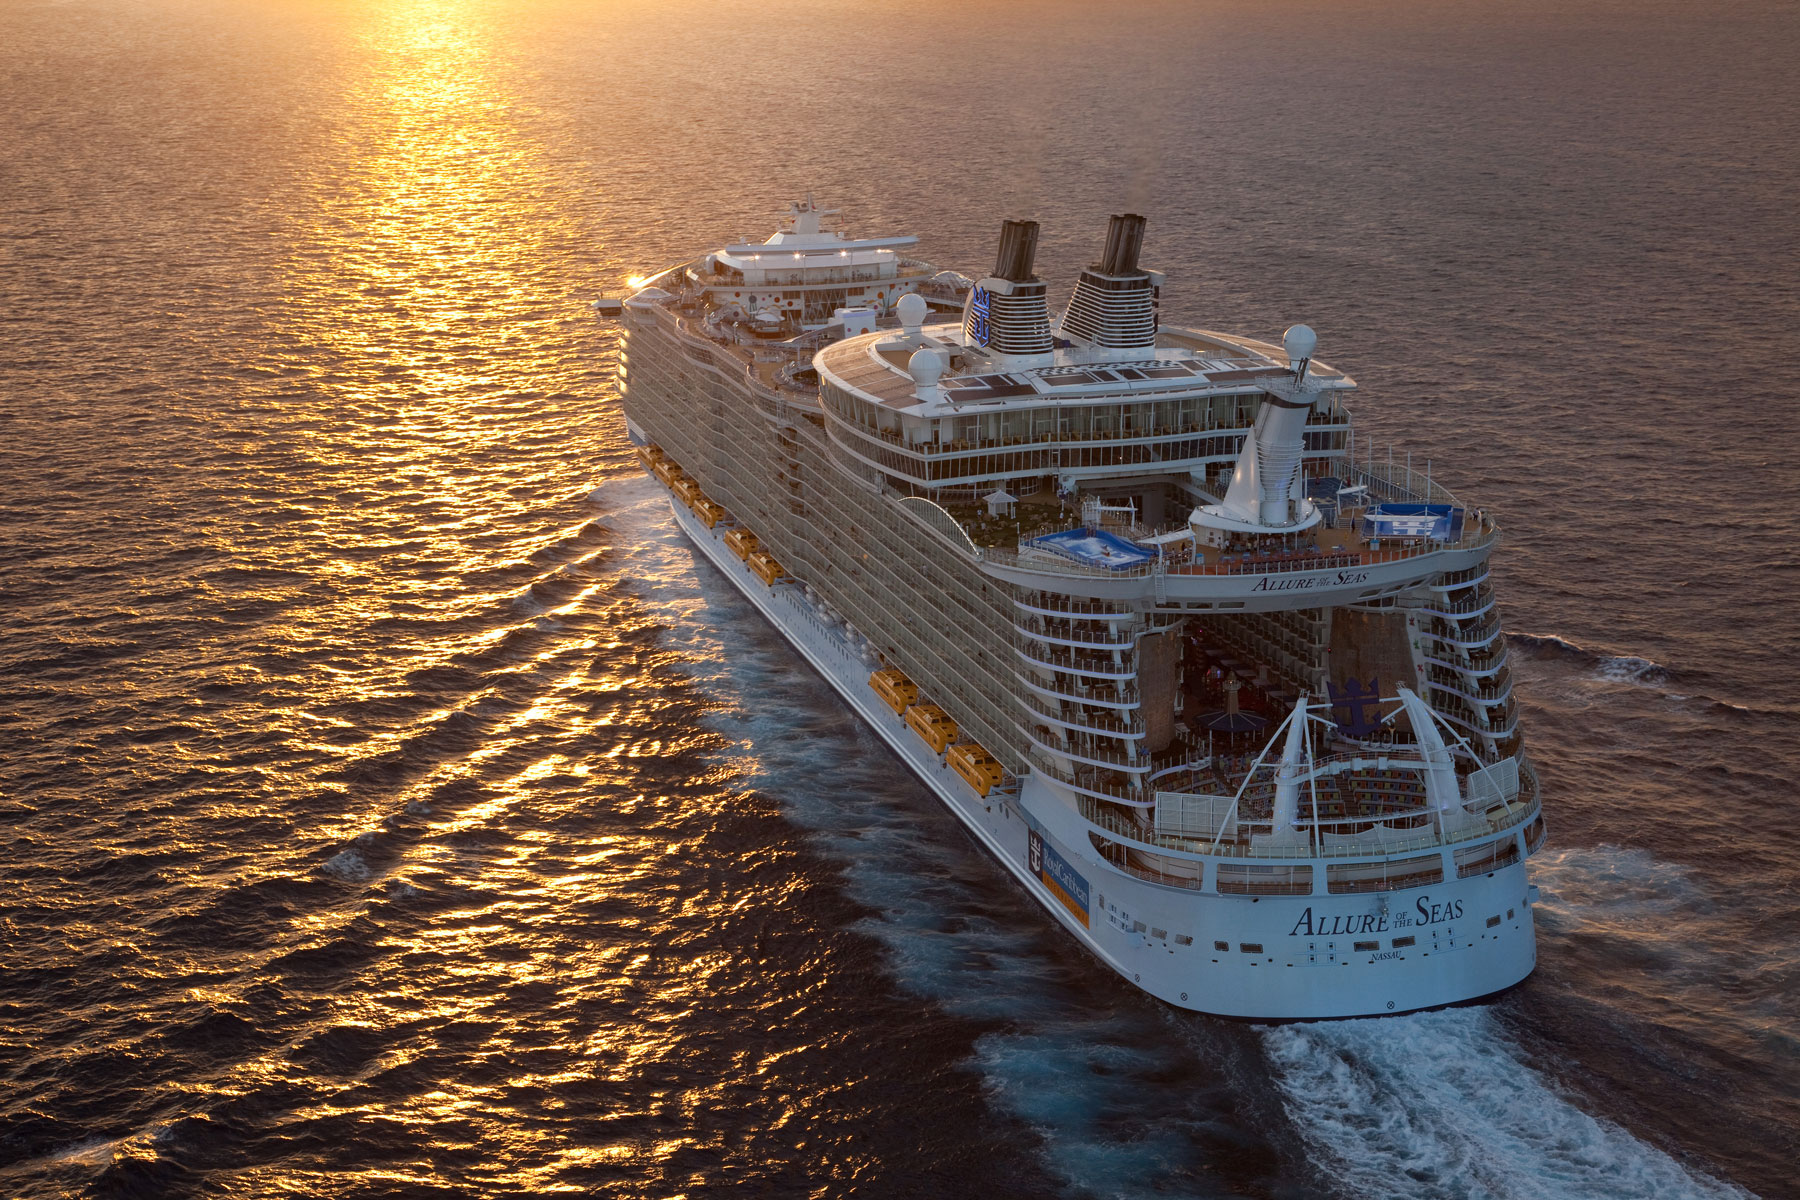 Royal Caribbean 'Allure of the Seas' cruise ship